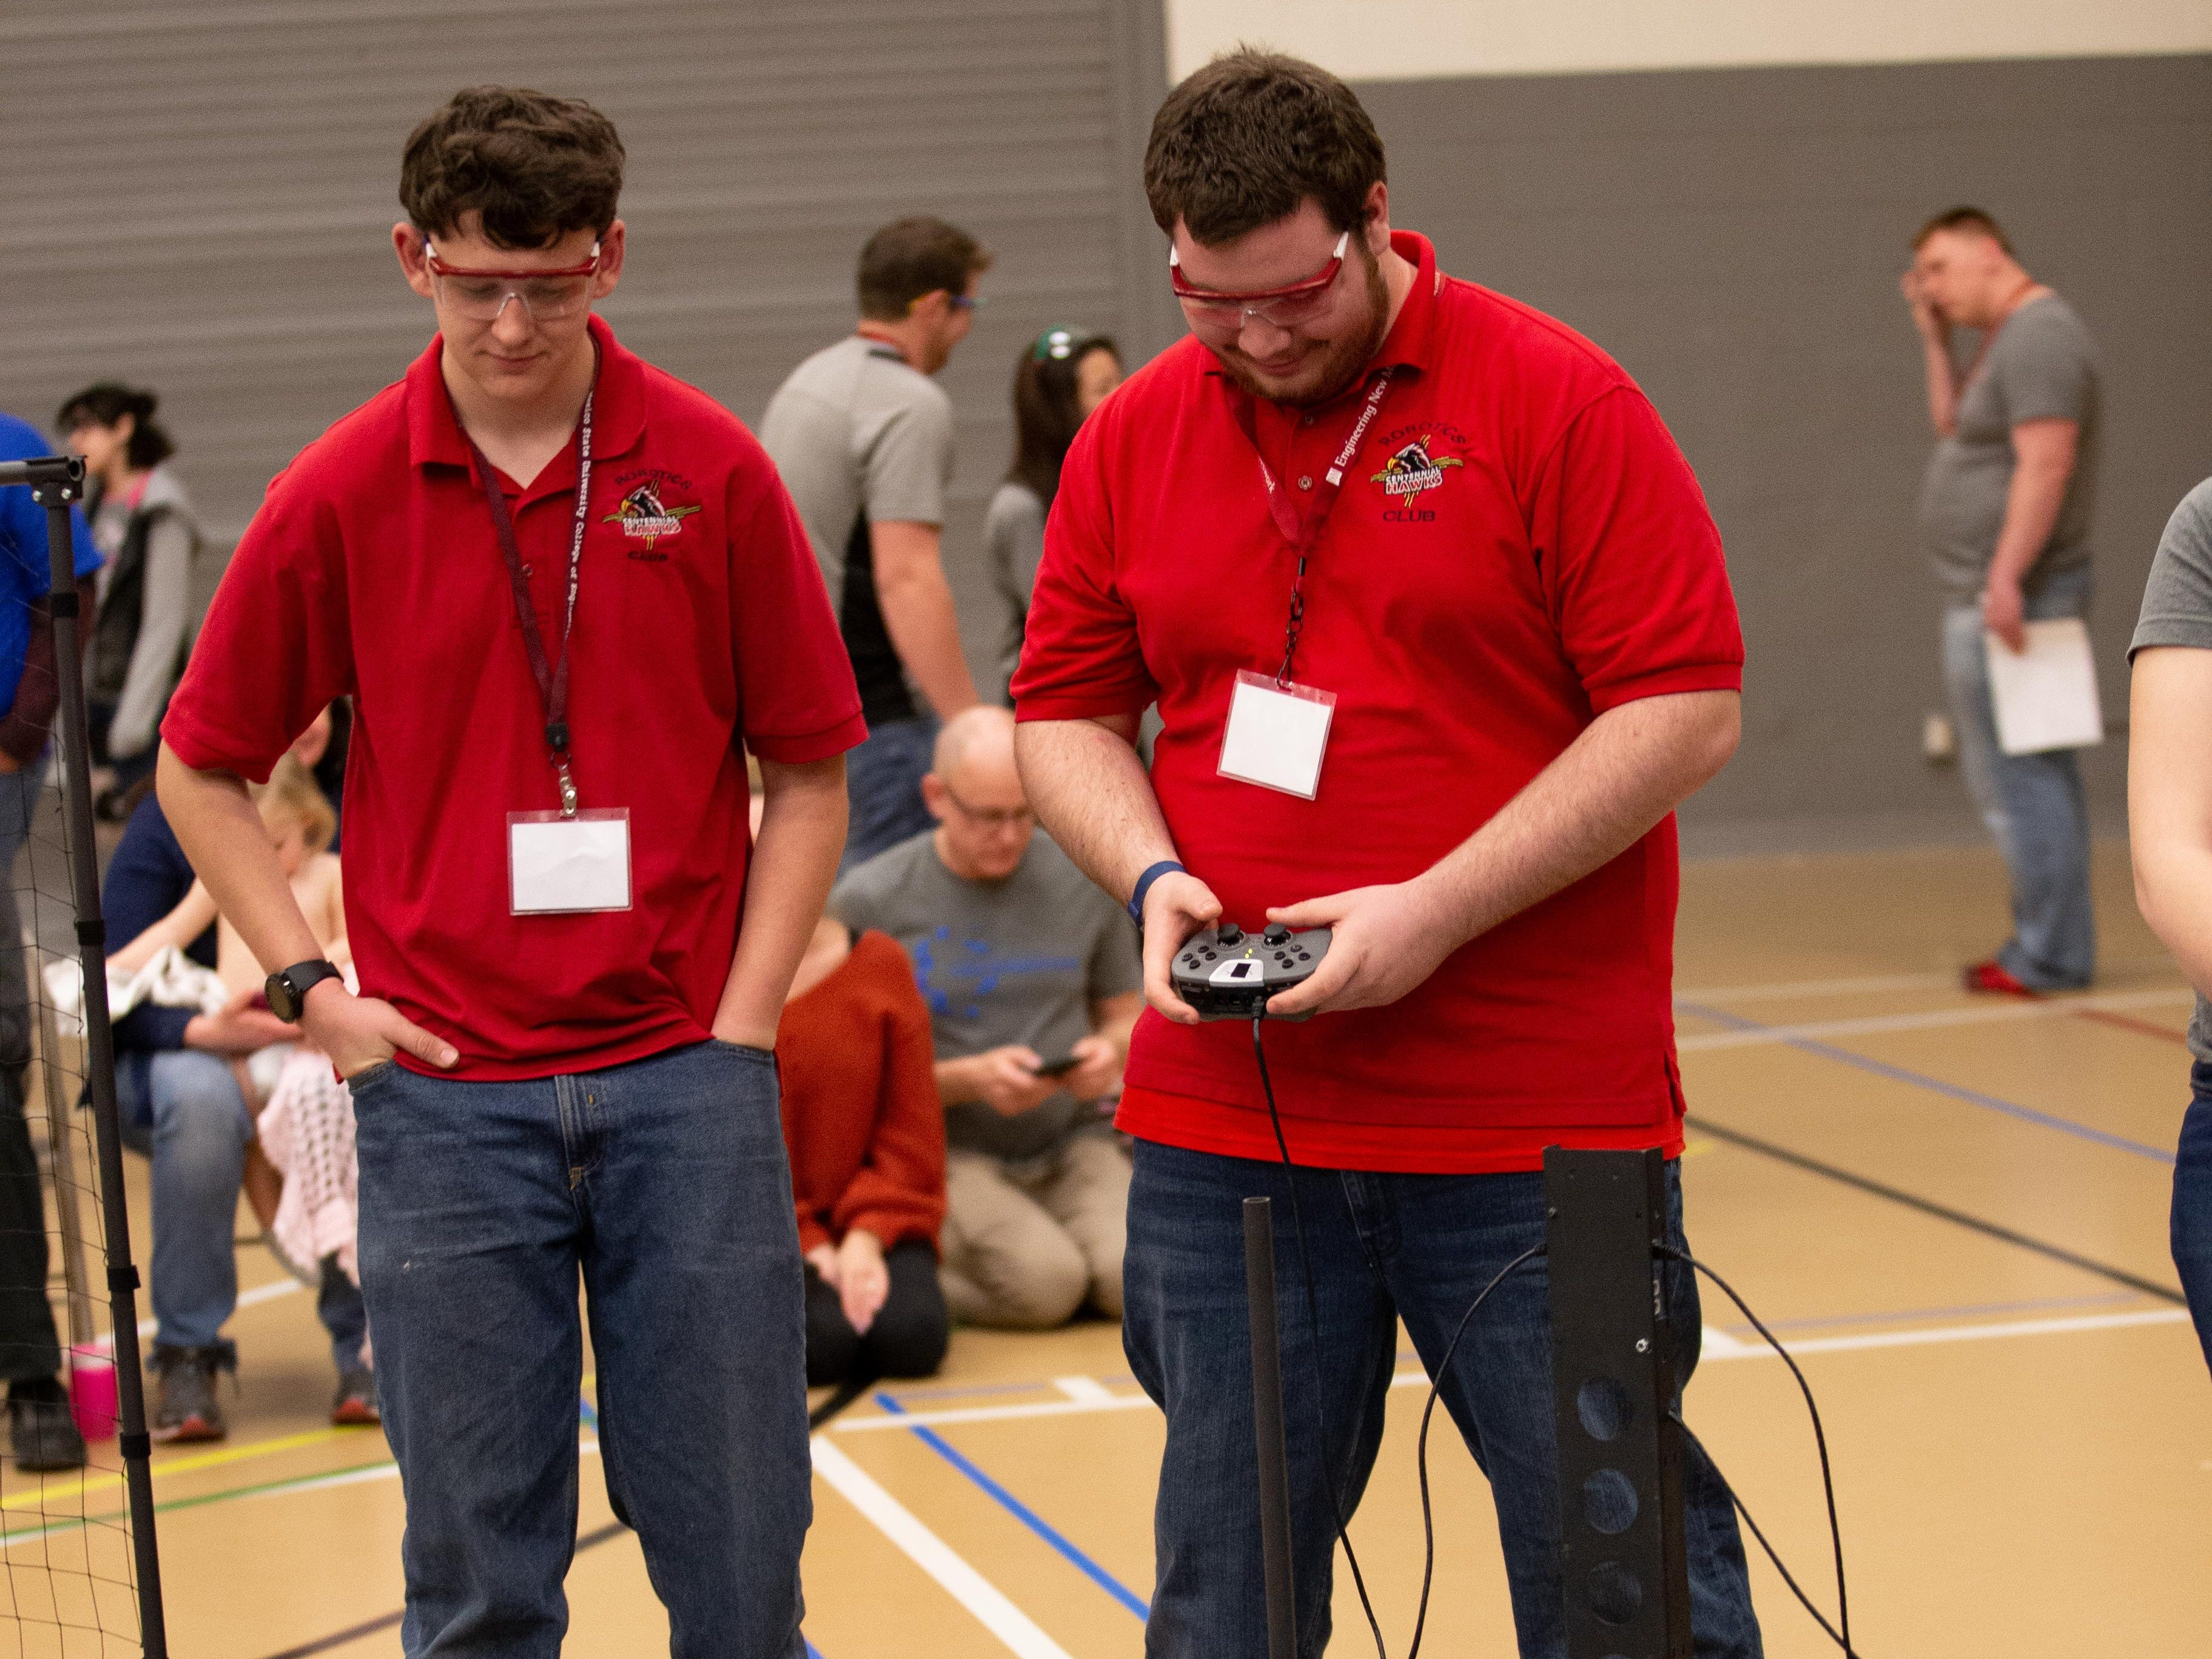 William Monger, 16, and Joseph Leach, 18, of Centennial High School's Hawk Nation Team, control their robot during the VEX Robotics competition for elementary, middle and high school students, held on the NMSU campus on February 16, 2019.